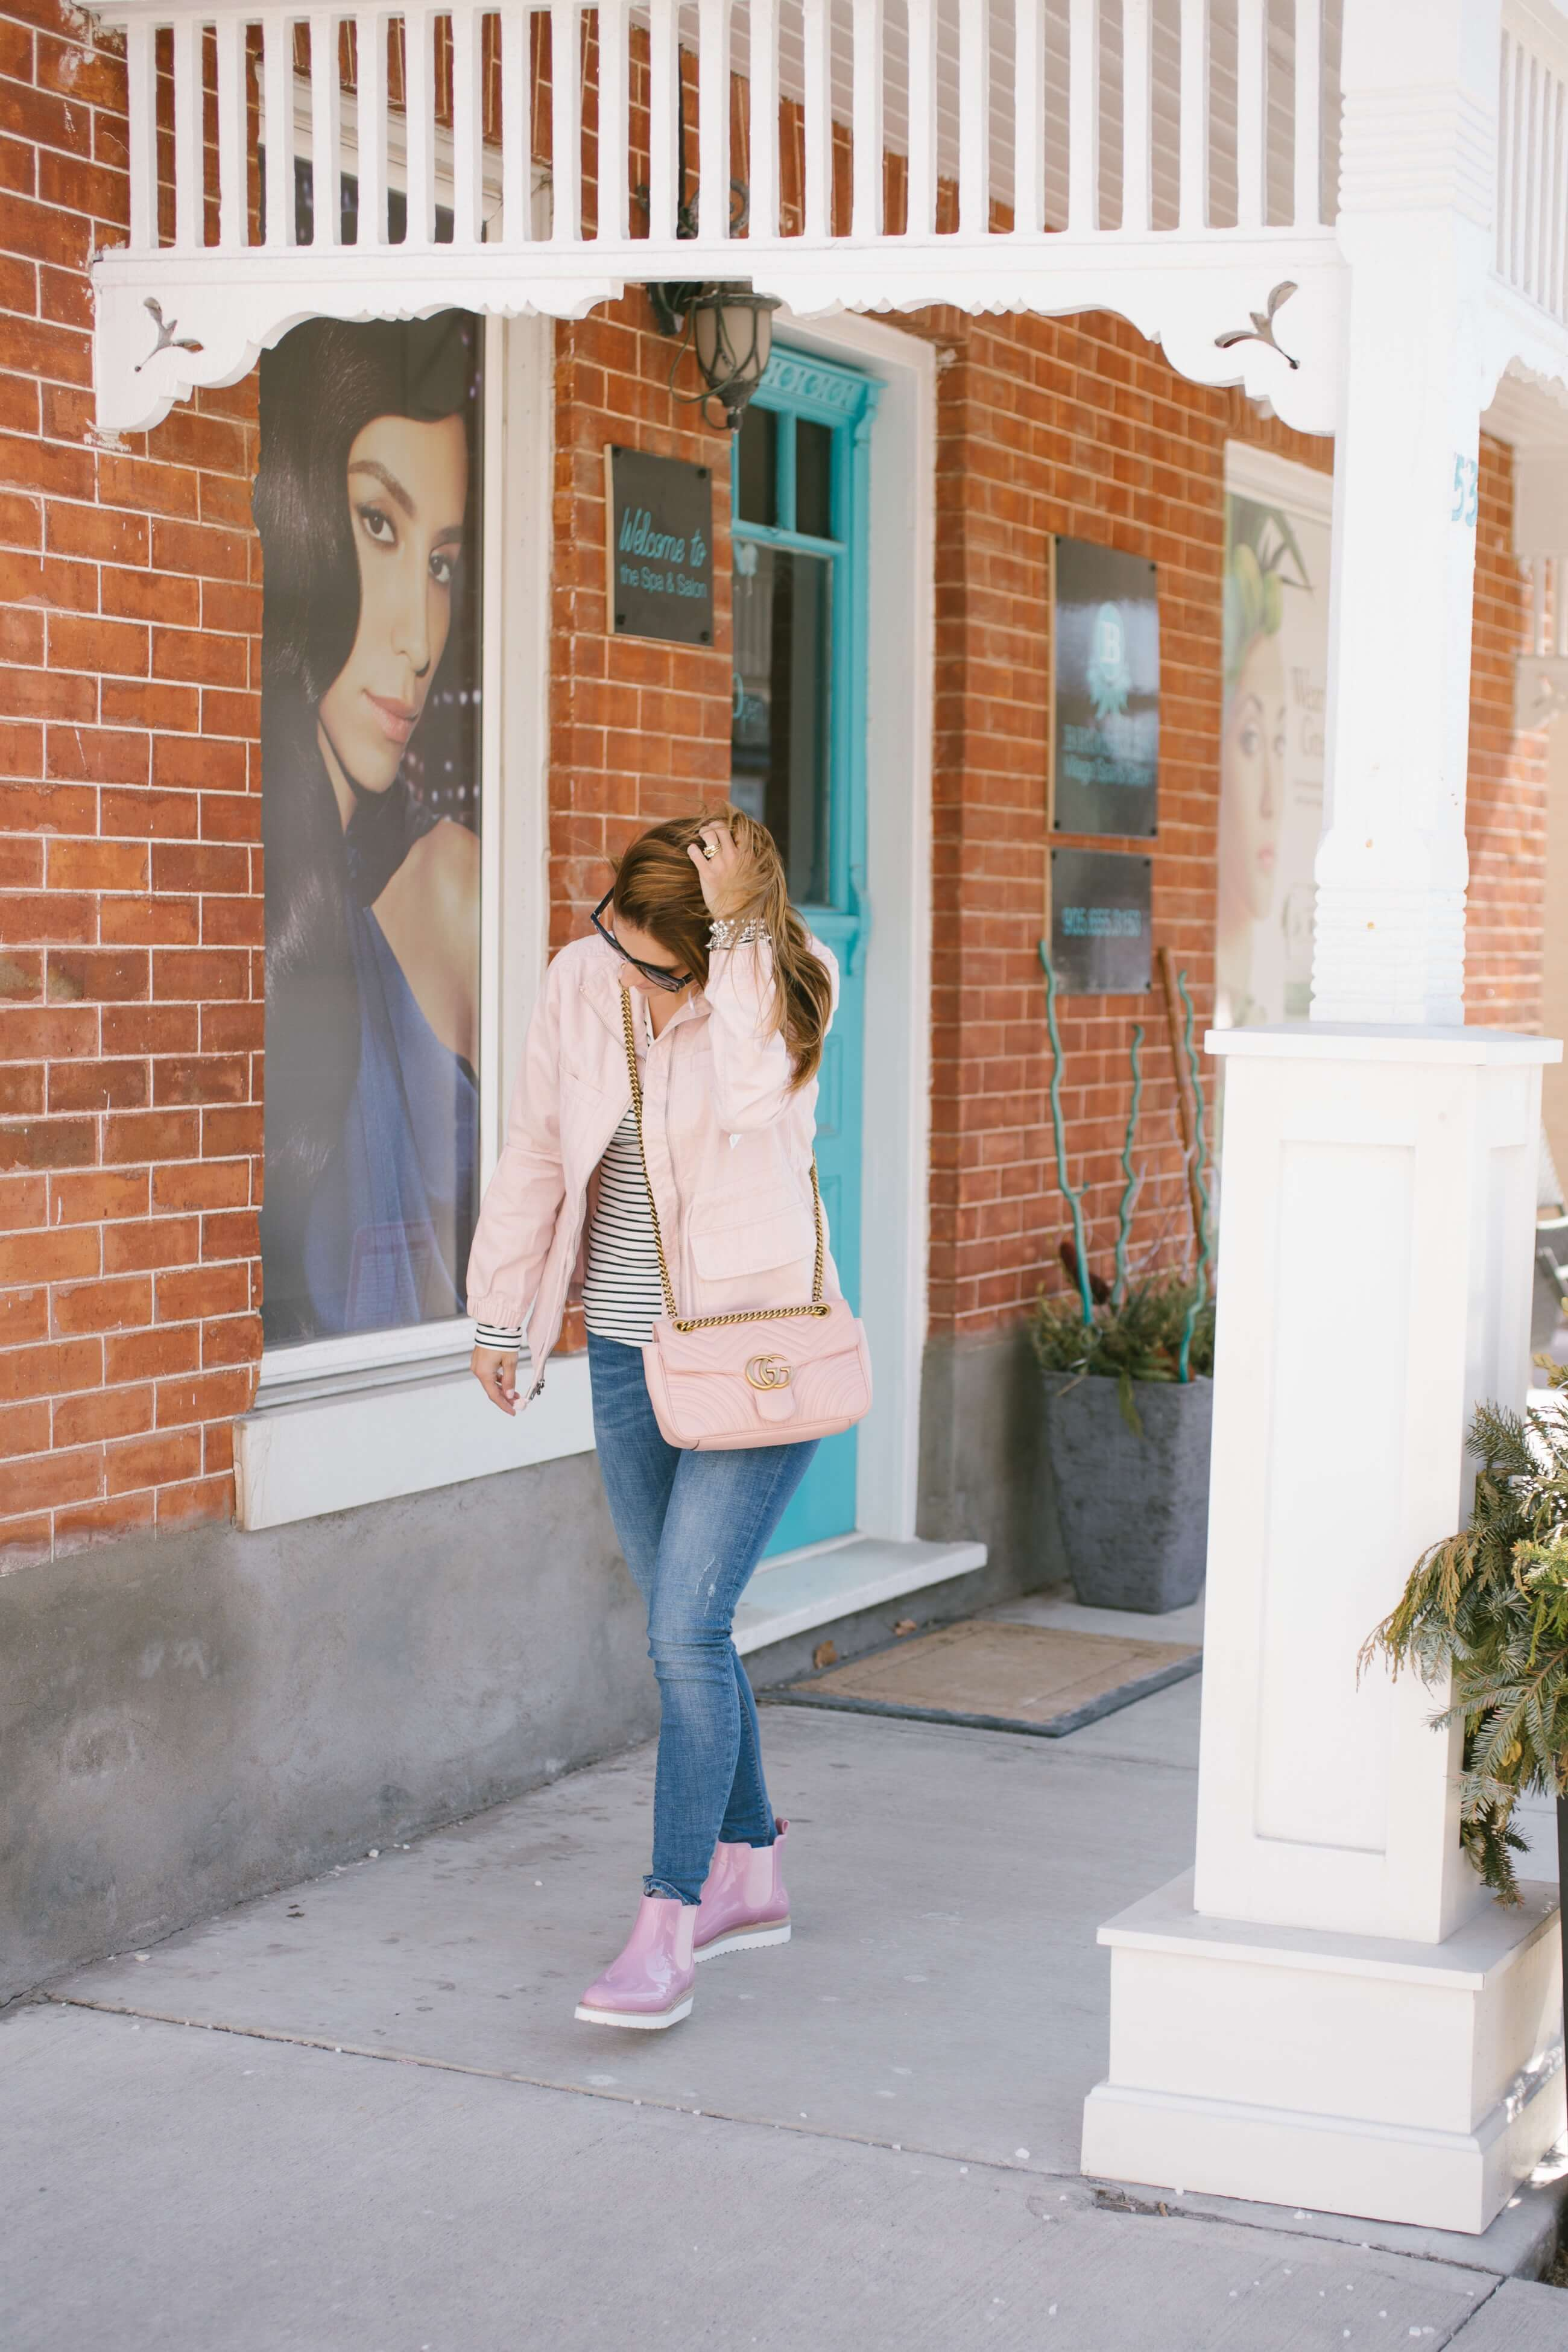 Pink rubber boots; pink spring jacket and pink boots; Pink Old Navy Twill Field Jacket, Pink Gucci Marmont bag, Cougar Kensington Chelsea Boots; Mandy Furnis sparkleshinylove